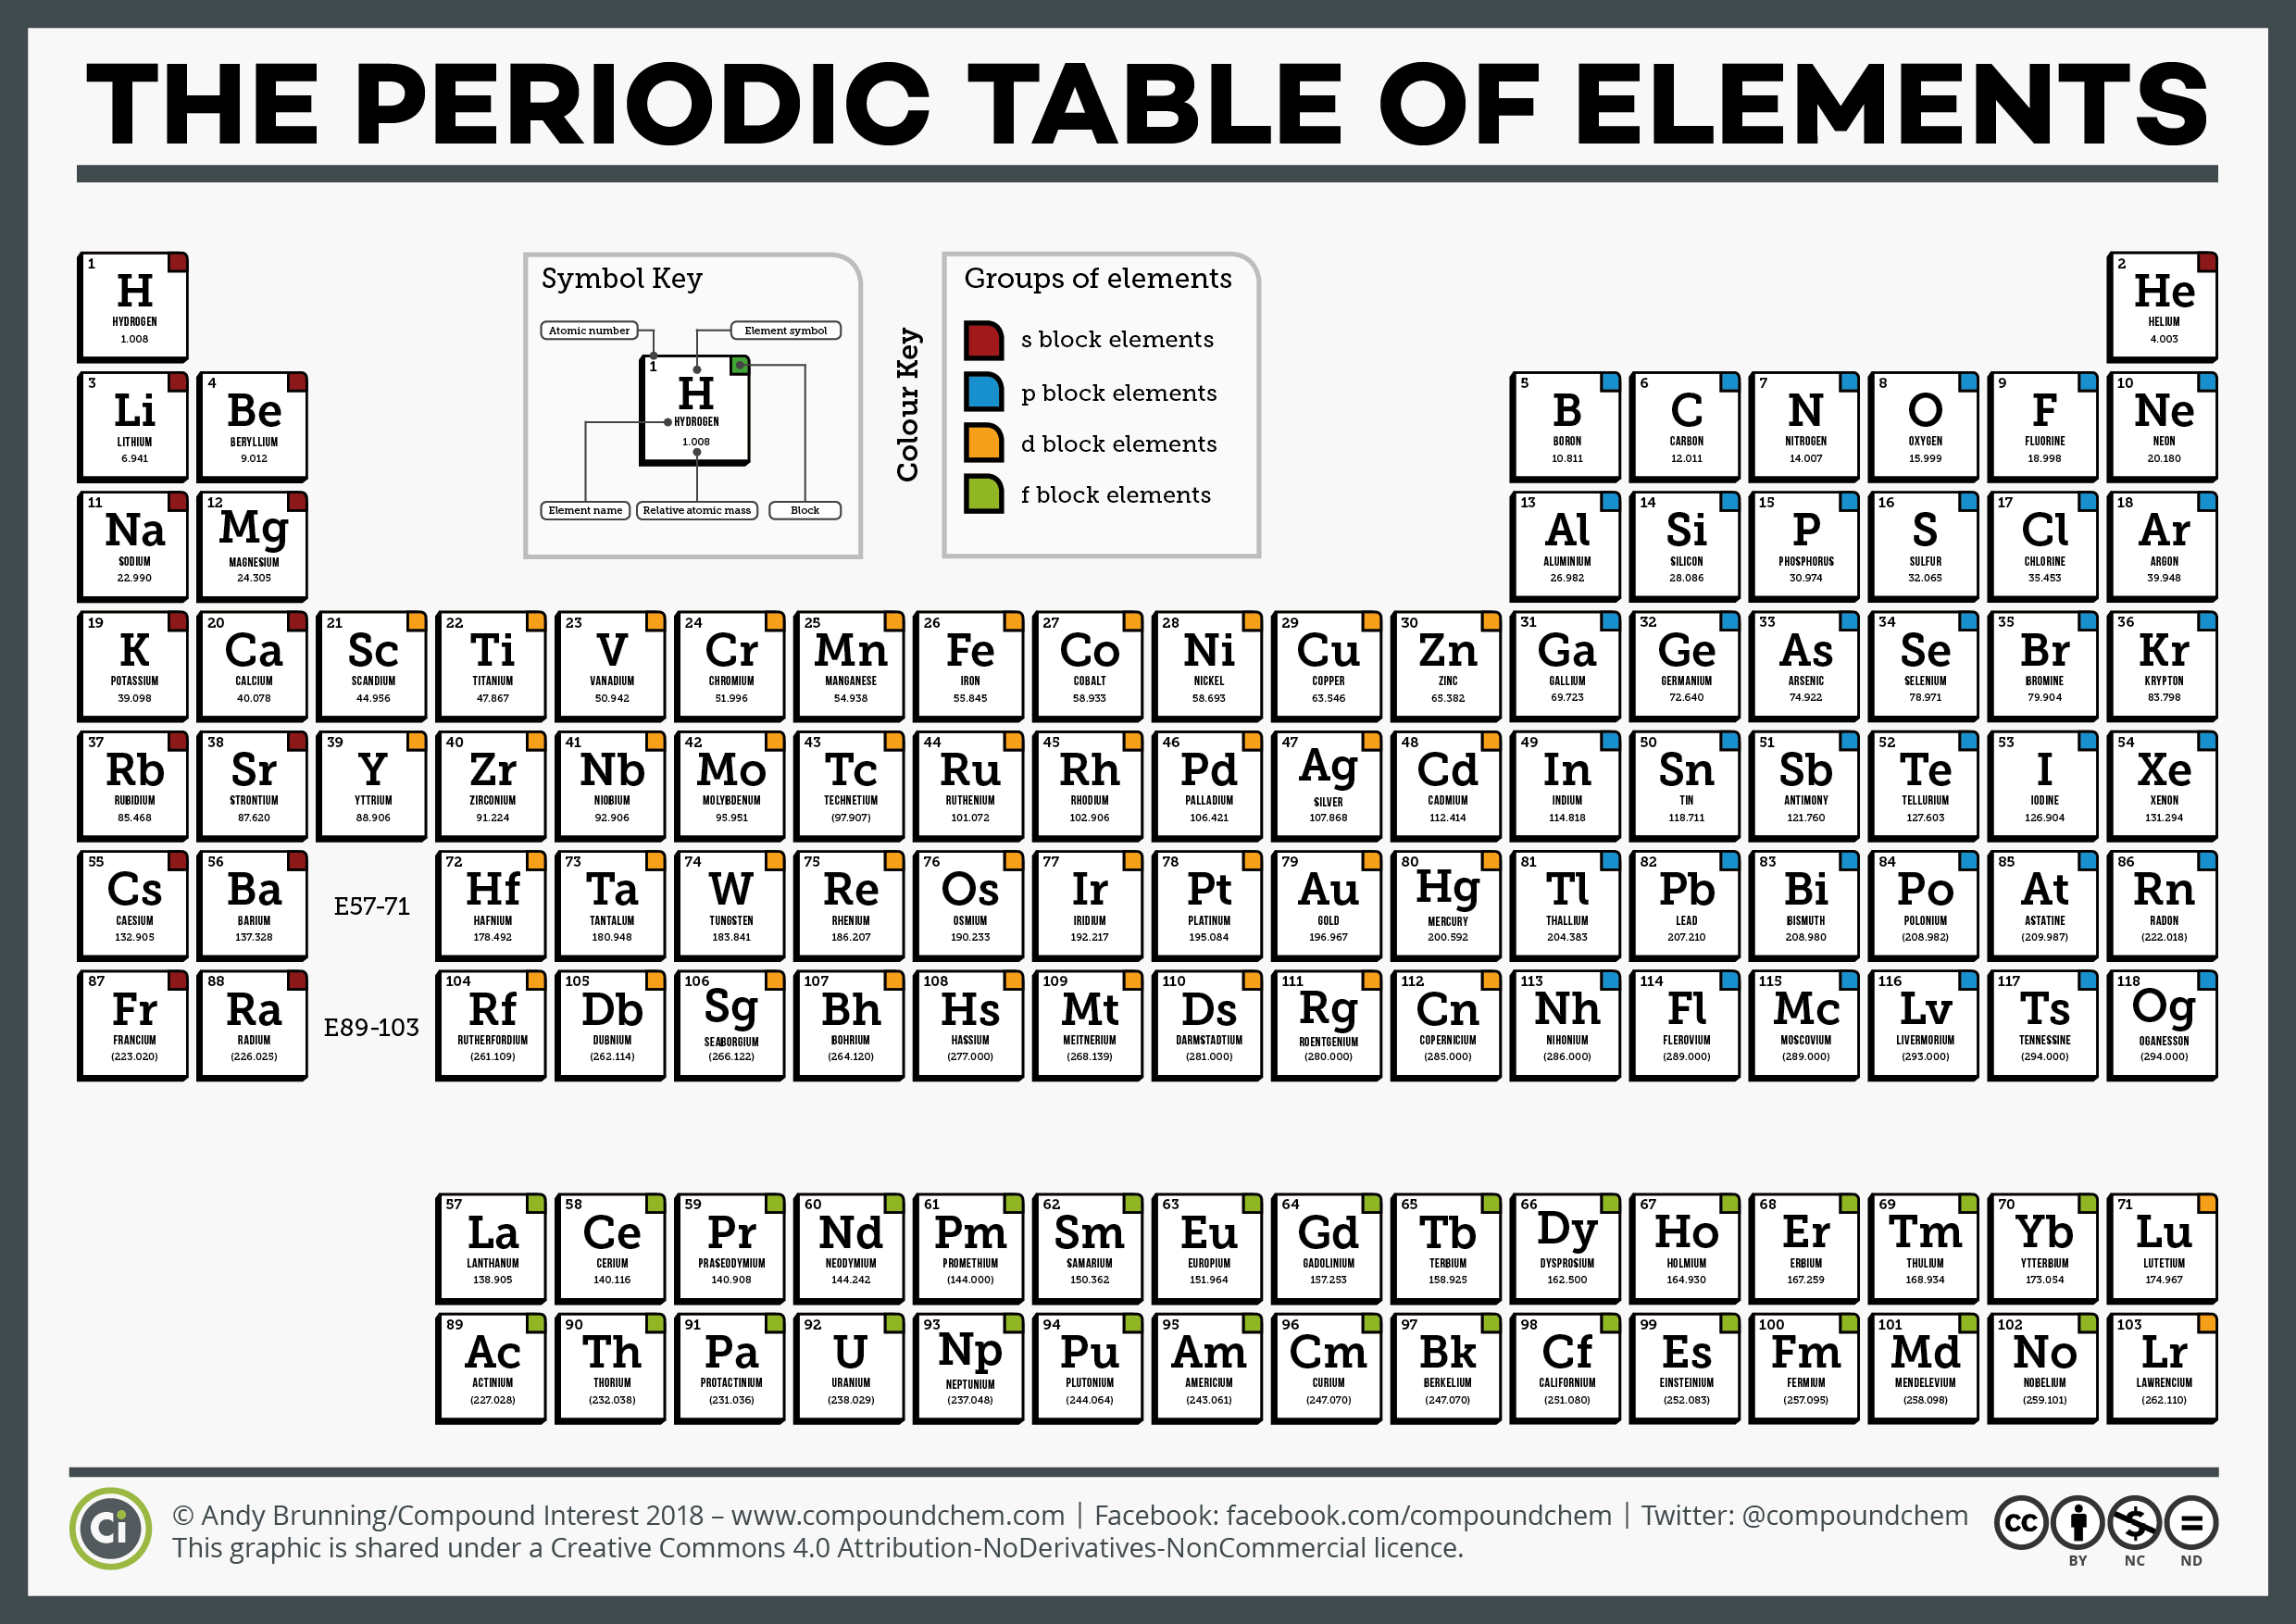 elements of the periodic table essay History of the periodic table essay dmitri mendeleev- first periodic table, organized 63 known elements the history of the periodic table.